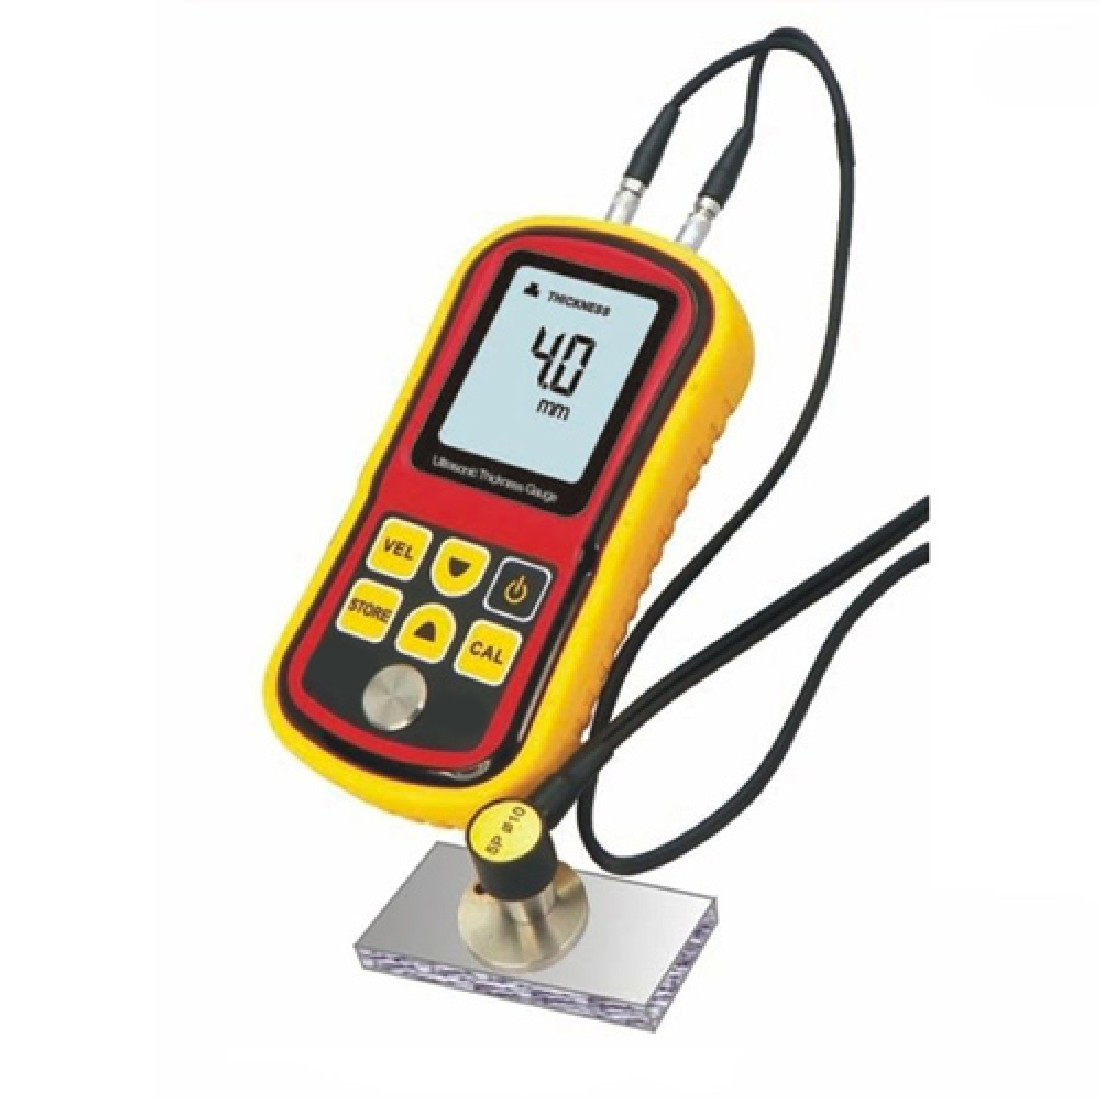 цена на Limited Coating Thickness Gauge Gm100 Ultrasonic Wall Thickness Gauge Meter Tester Steel Pvc Digital Testing